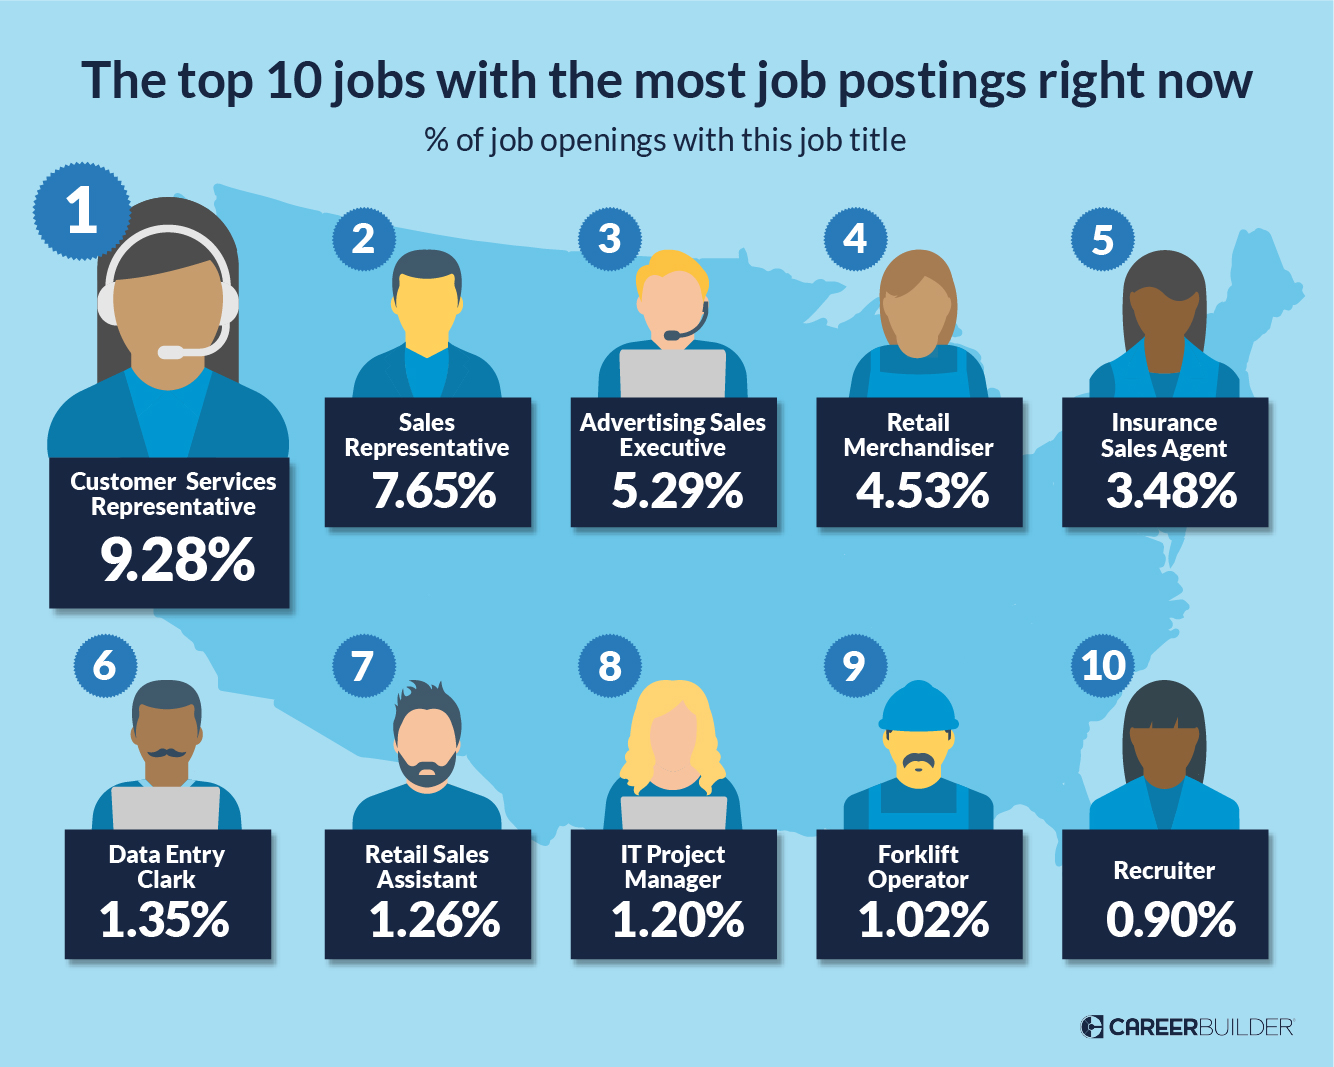 Graphic of the top 10 jobs hiring now and the skills needed: Customer Service Sales, Business Development, Marketing, Relationship Building, Account Management, Lead Generation, Sales Opportunity, Customer Retention, Insurance Sales, Stocking, Retail, Communications, Leadership, Planogram.